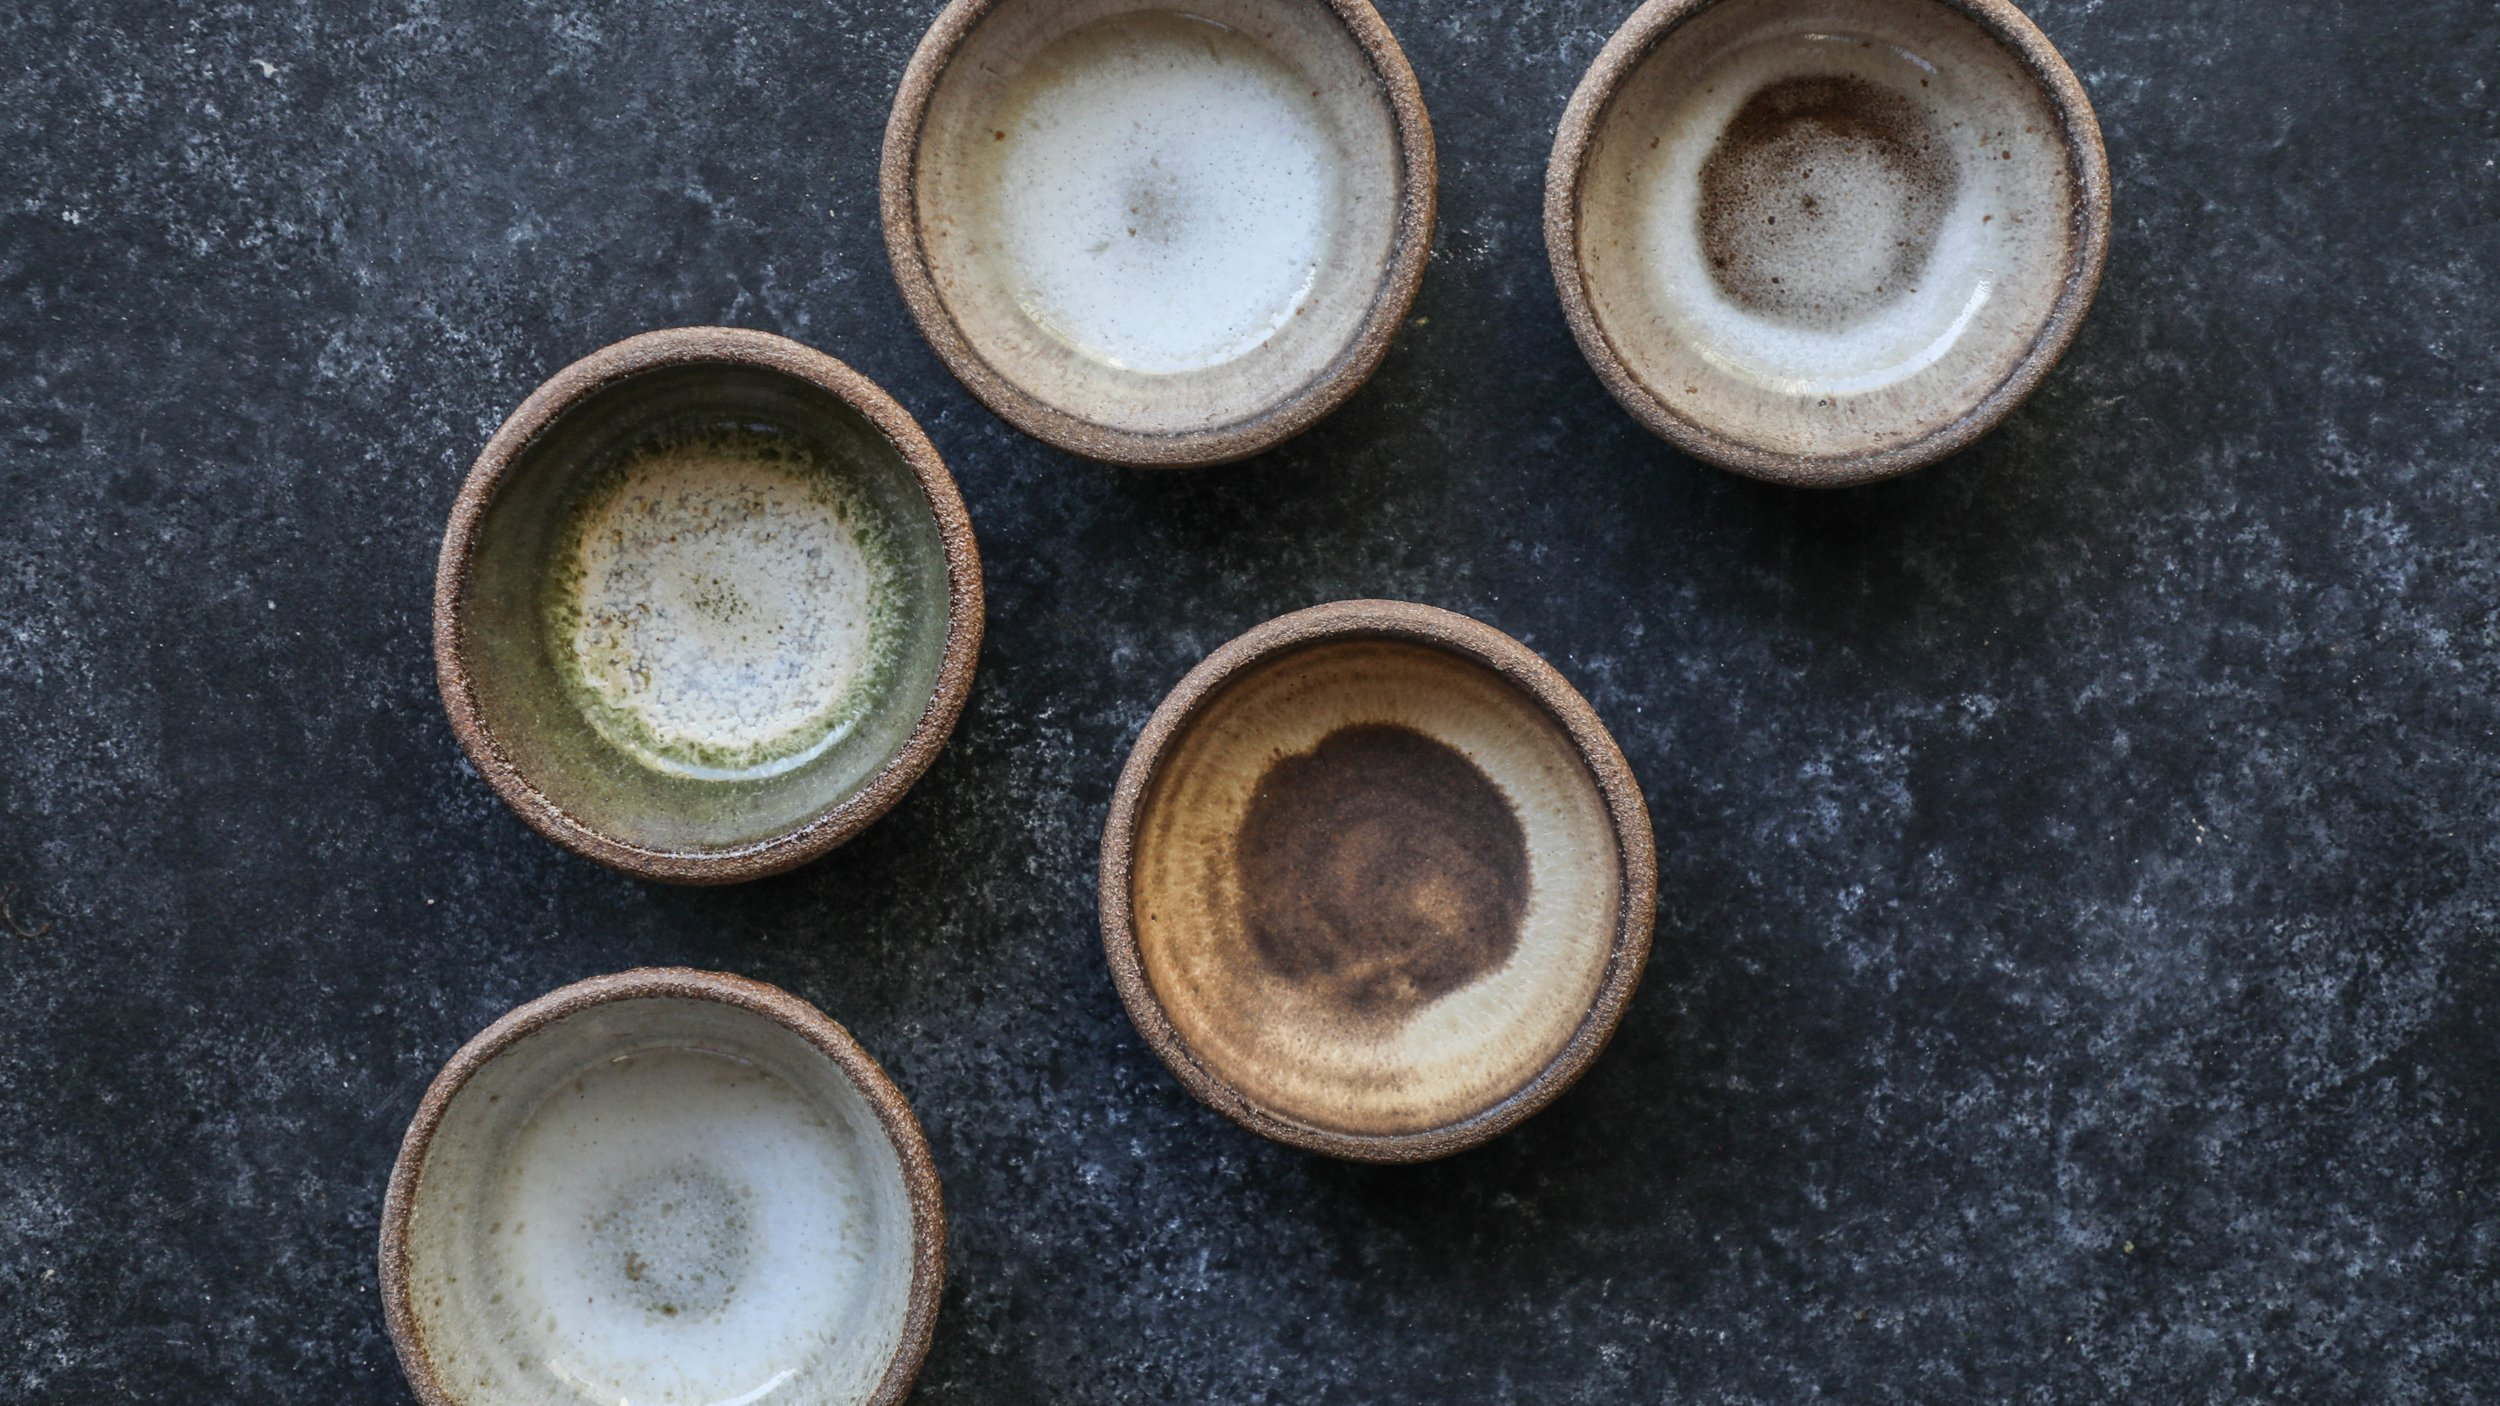 4%22 Ramekin - (top-down view mixed glazes) - TPC (52 of 109).jpg